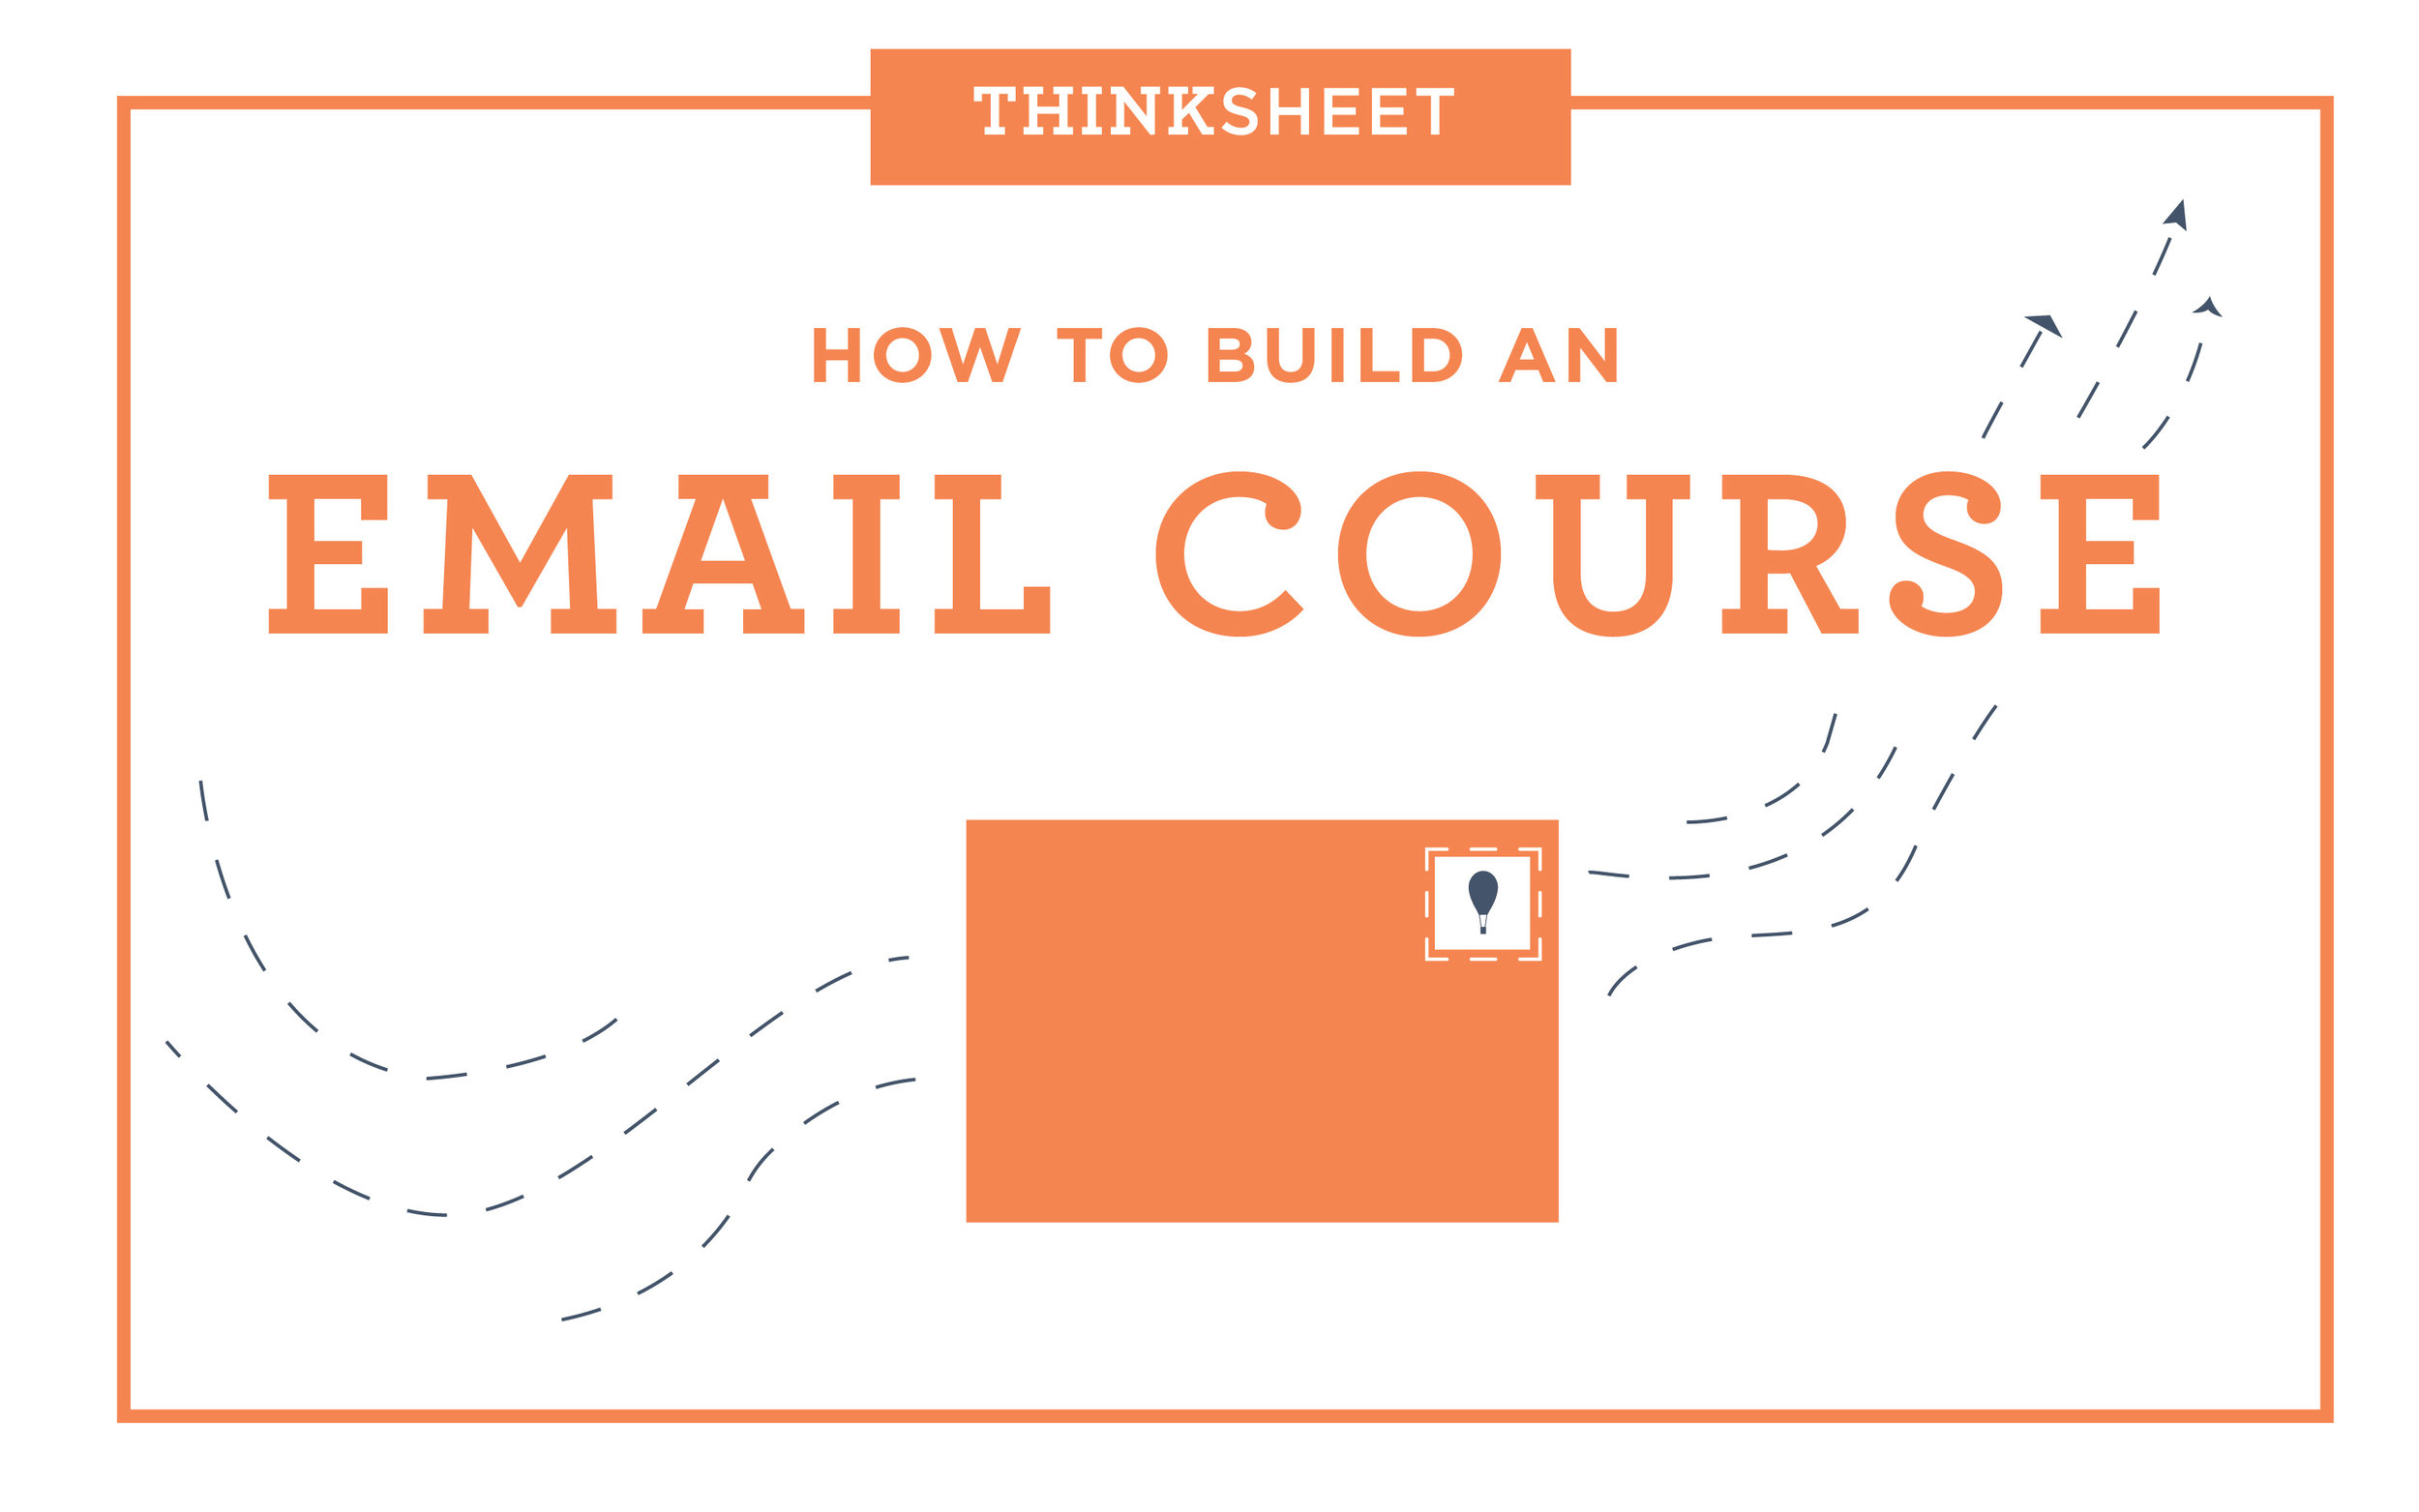 JS_thinksheet-emailcourse.jpg